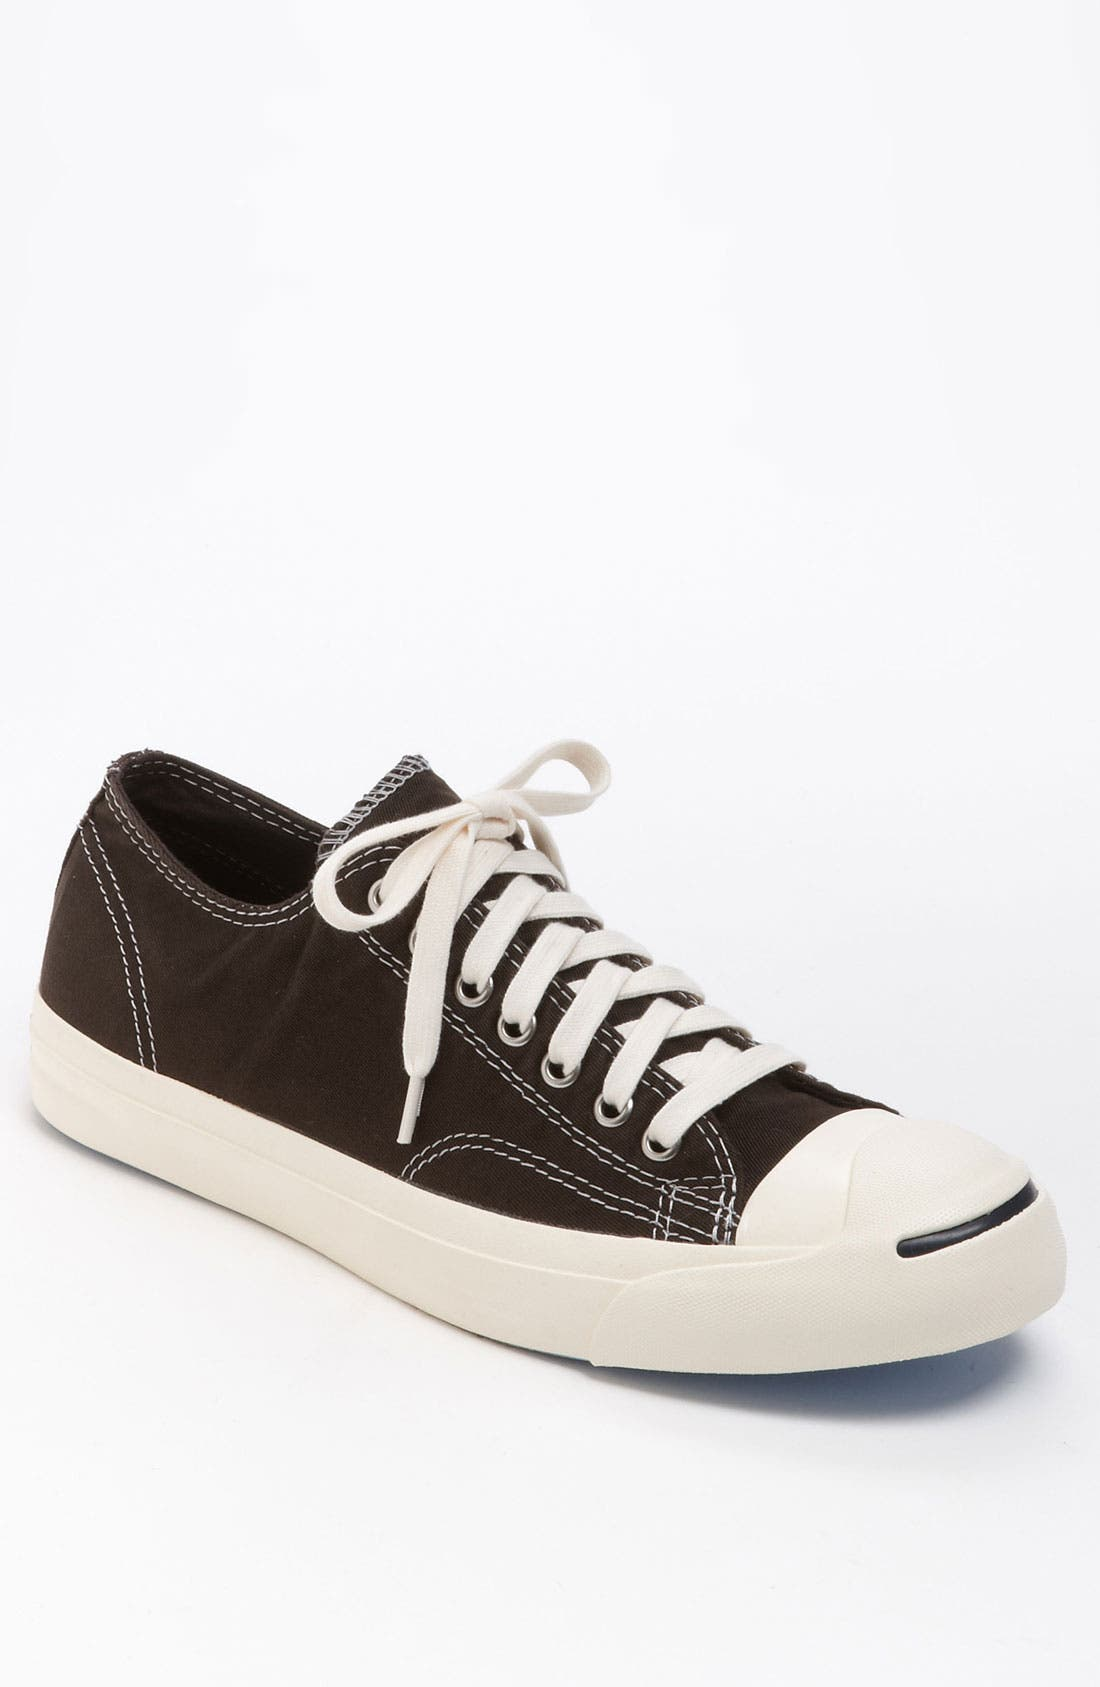 'Jack Purcell LTT' Sneaker, Main, color, 001